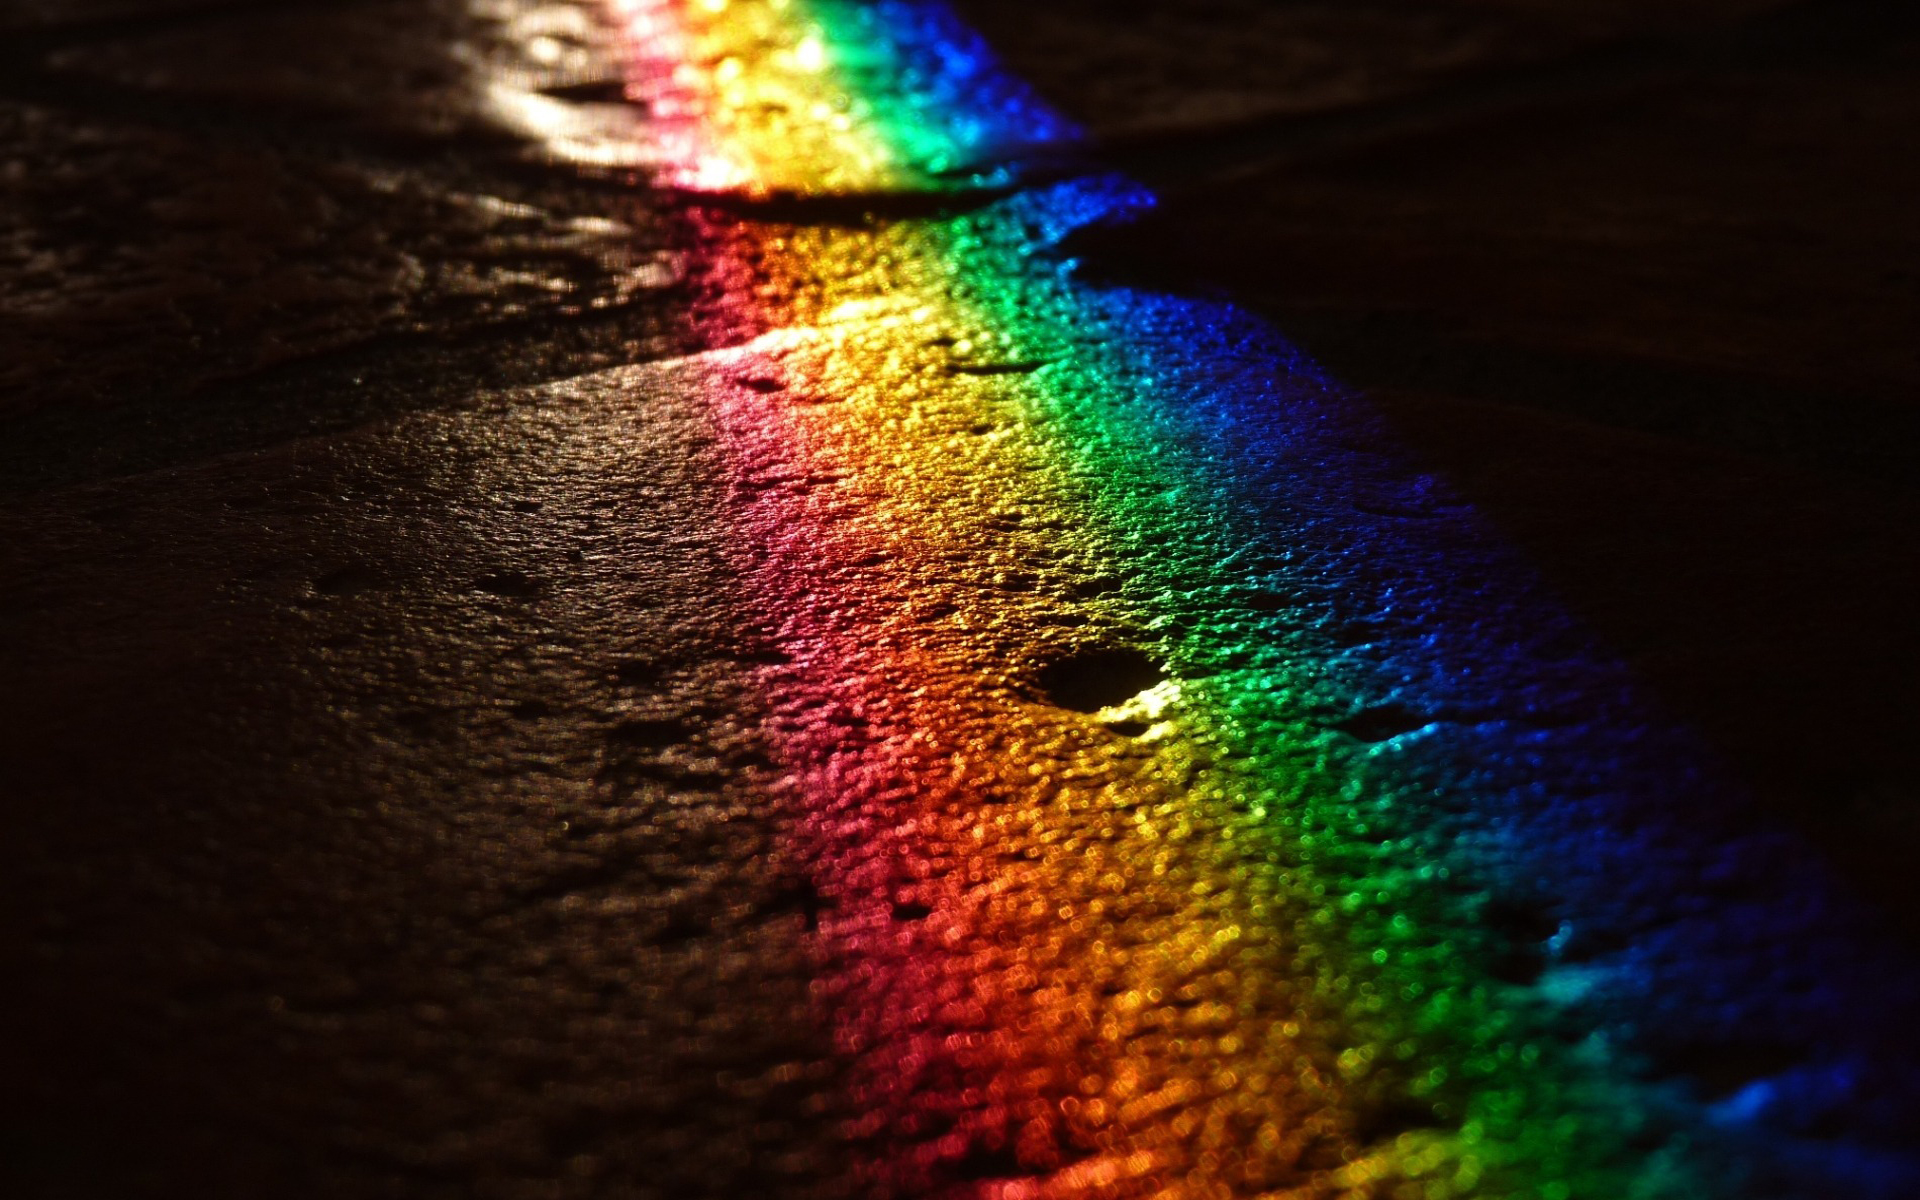 Hd wallpaper rainbow - To Download Wallpapers Just Right Click On Pictures And Select